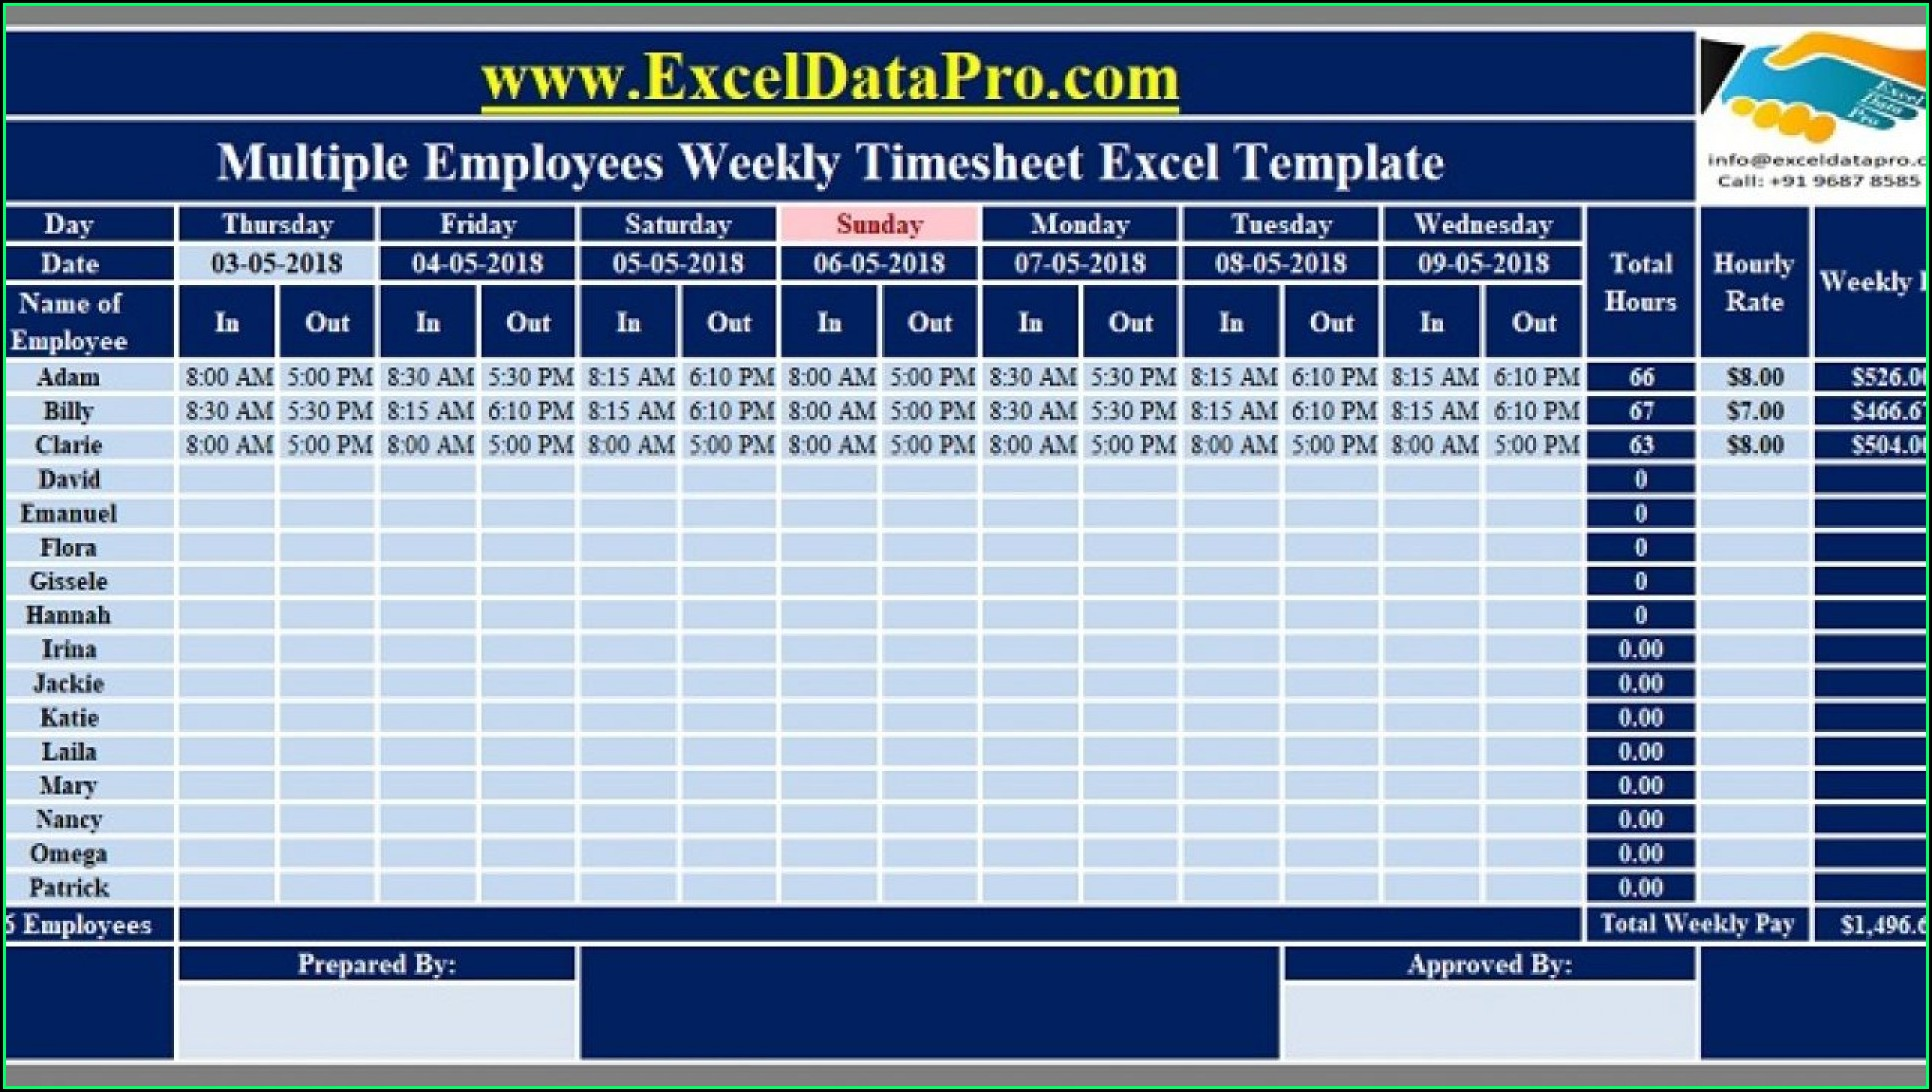 Free Excel Timesheet Template With Formulas For Multiple Employees